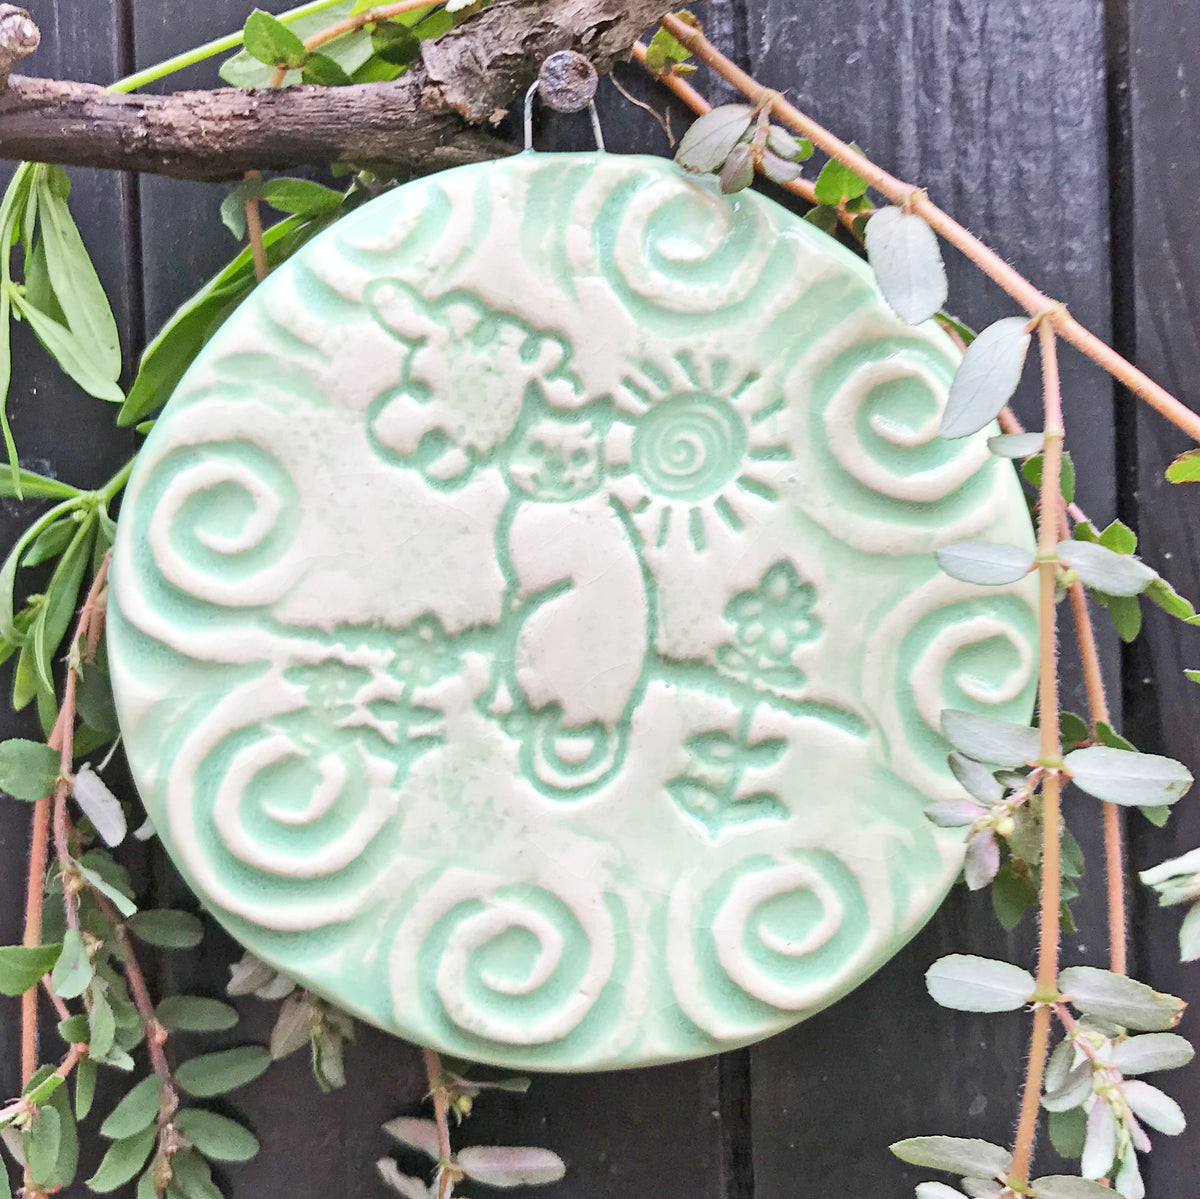 The Spa Green glaze is subtle but pools into the drawing of our Cat in the Sun Ornament.  This color, often called Celadon Green is prized on pre-renaissance porcelain ceramics of Korea and China.